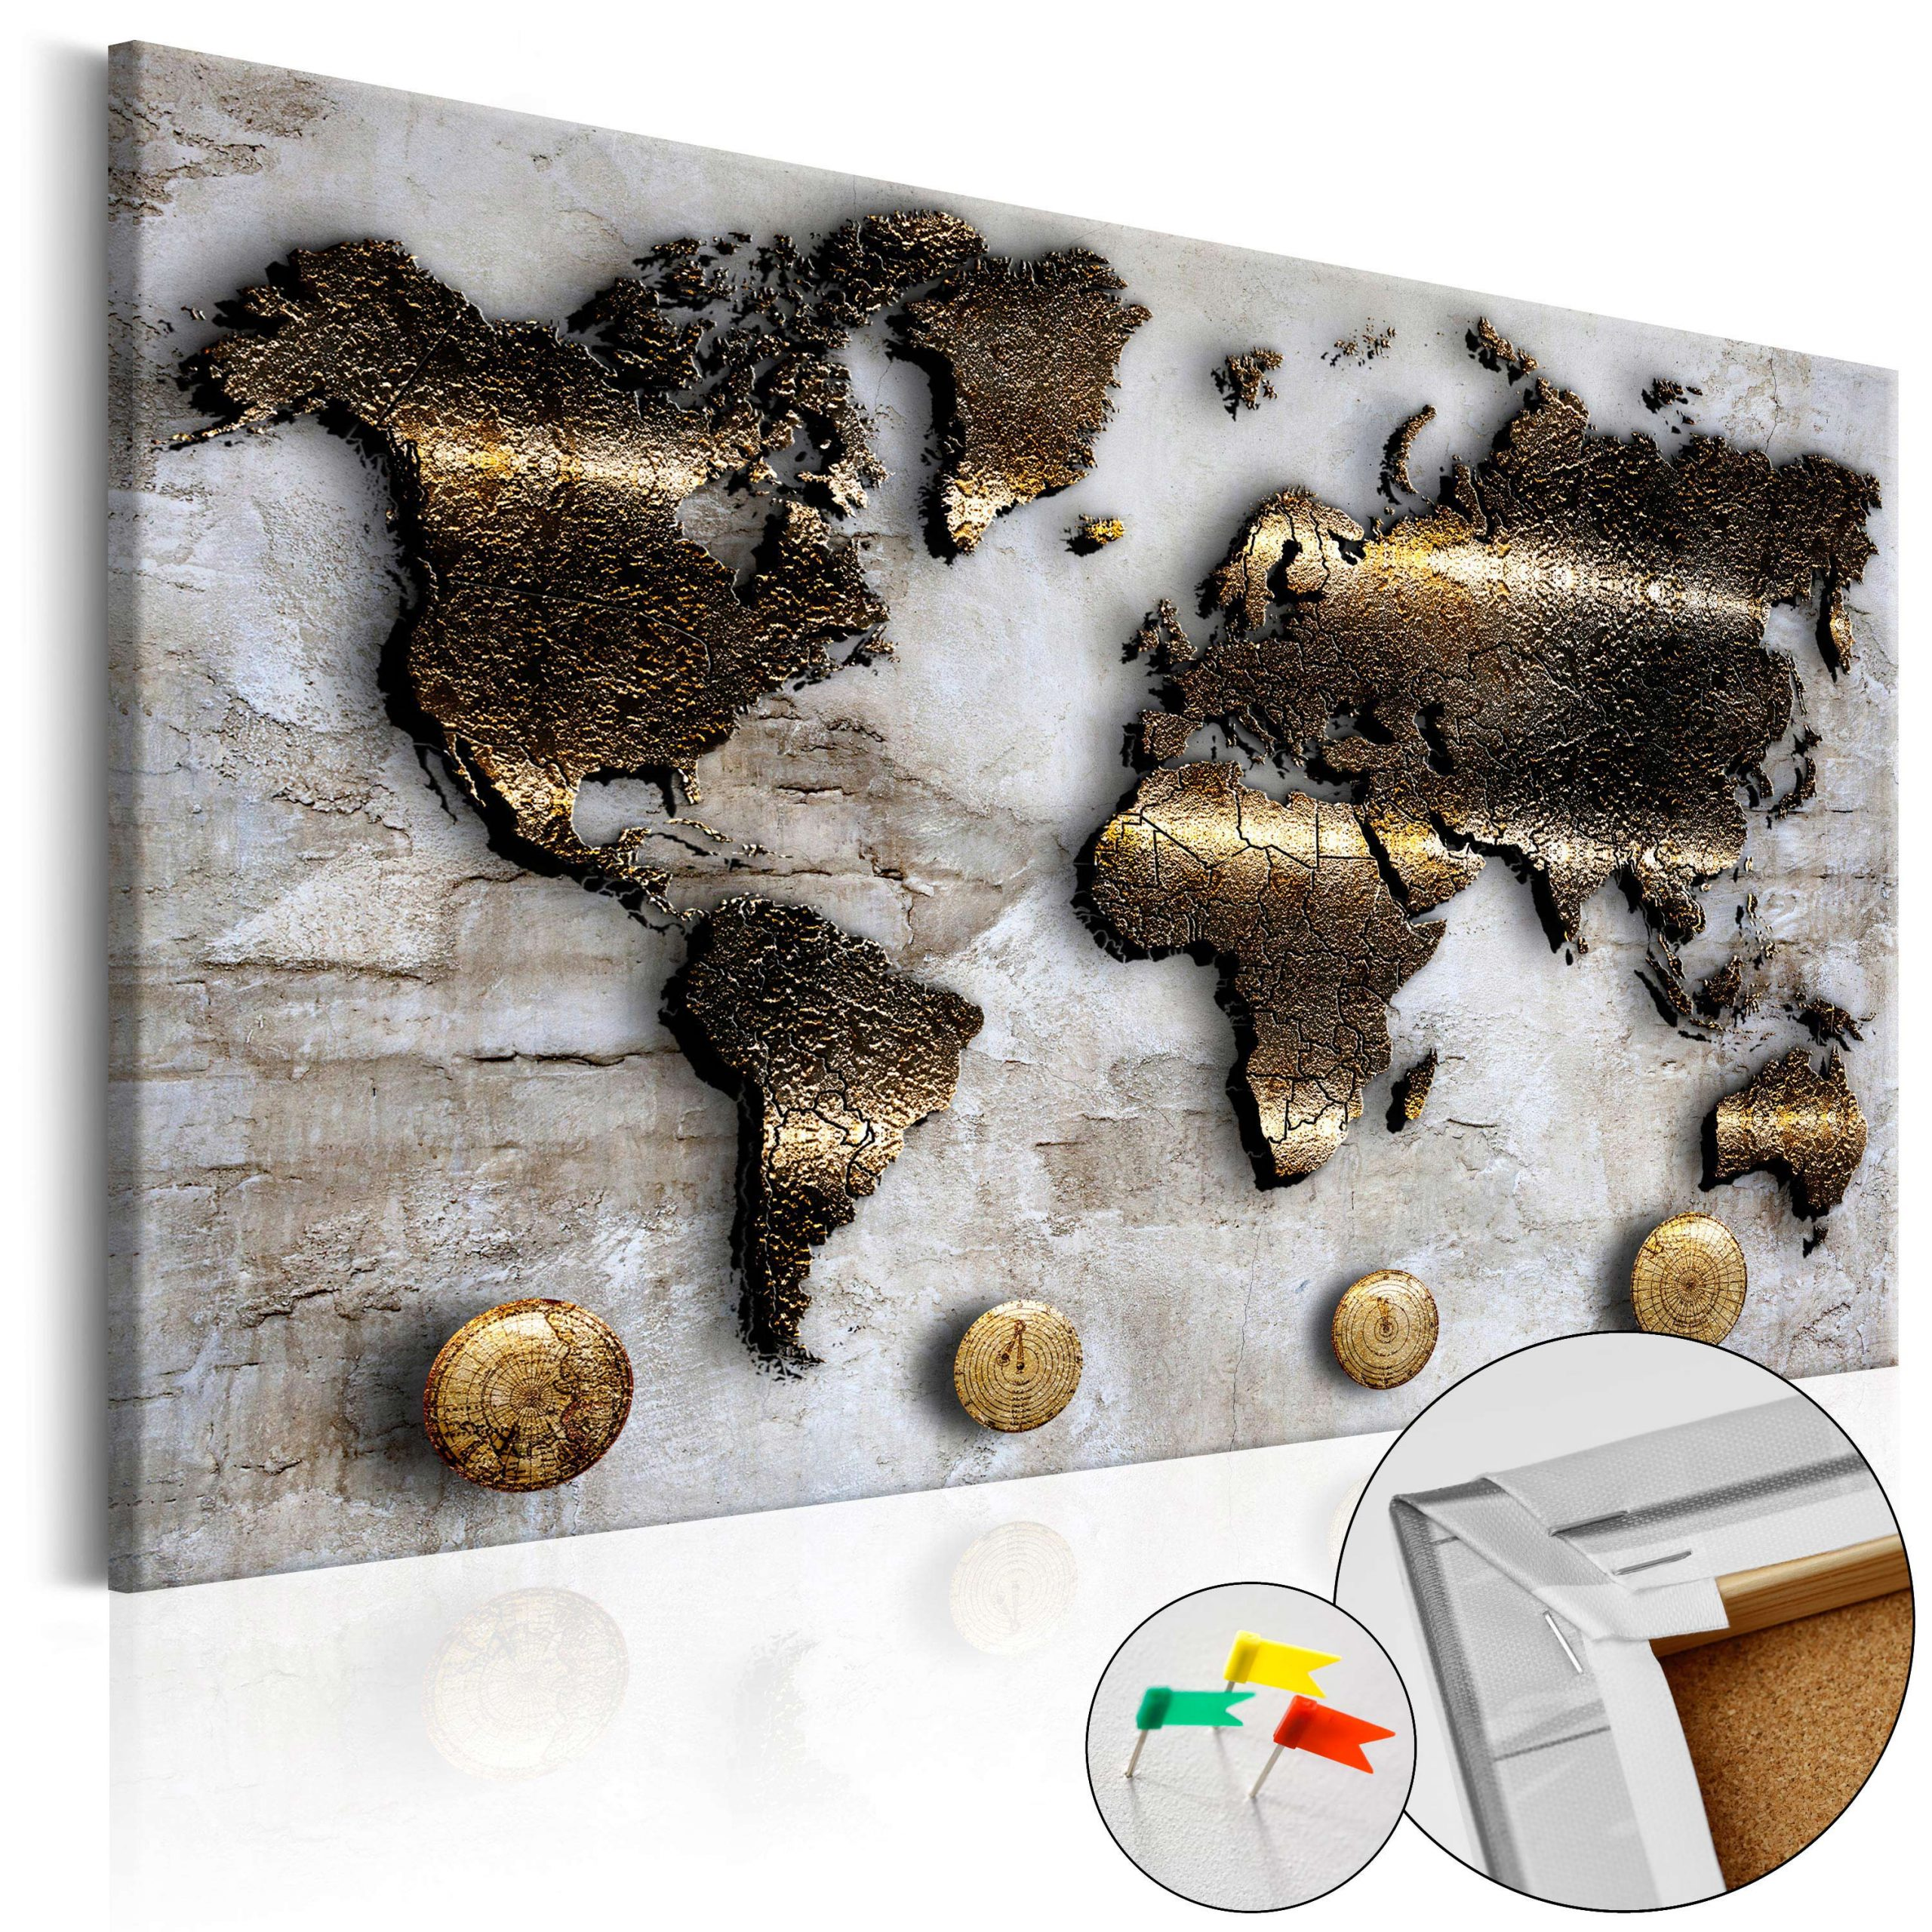 Full Size of Pinnwand Modern Korkbild Golden Journey Cork Map Moderne Esstische Modernes Bett Sofa Duschen Deckenleuchte Wohnzimmer Bilder Fürs Küche Holz Weiss Esstisch Wohnzimmer Pinnwand Modern